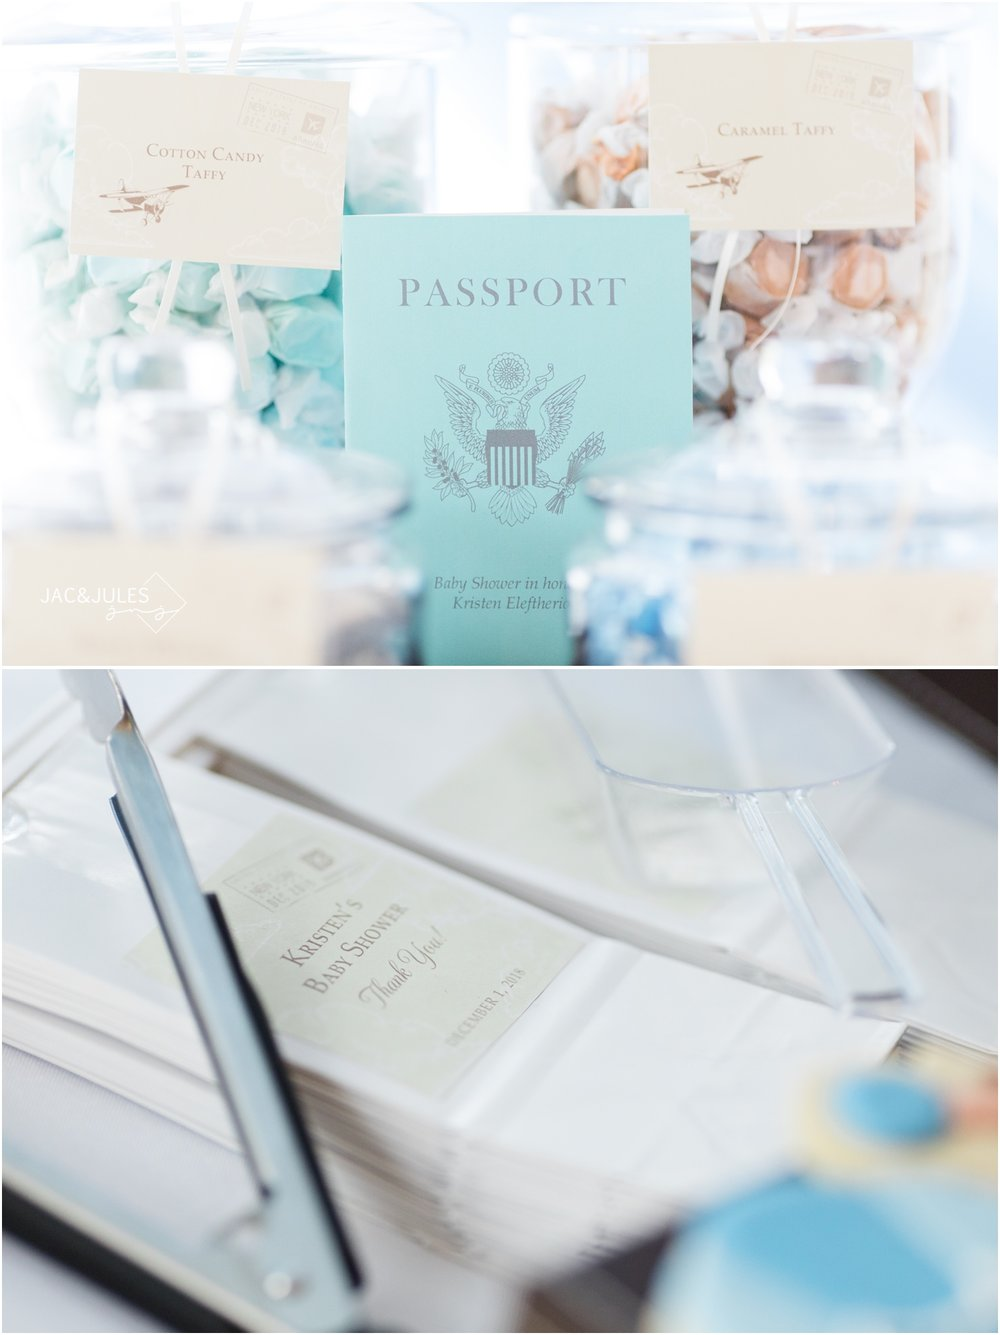 luggage cake and world cake pops for travel theme baby shower at Forsgate Country Club.